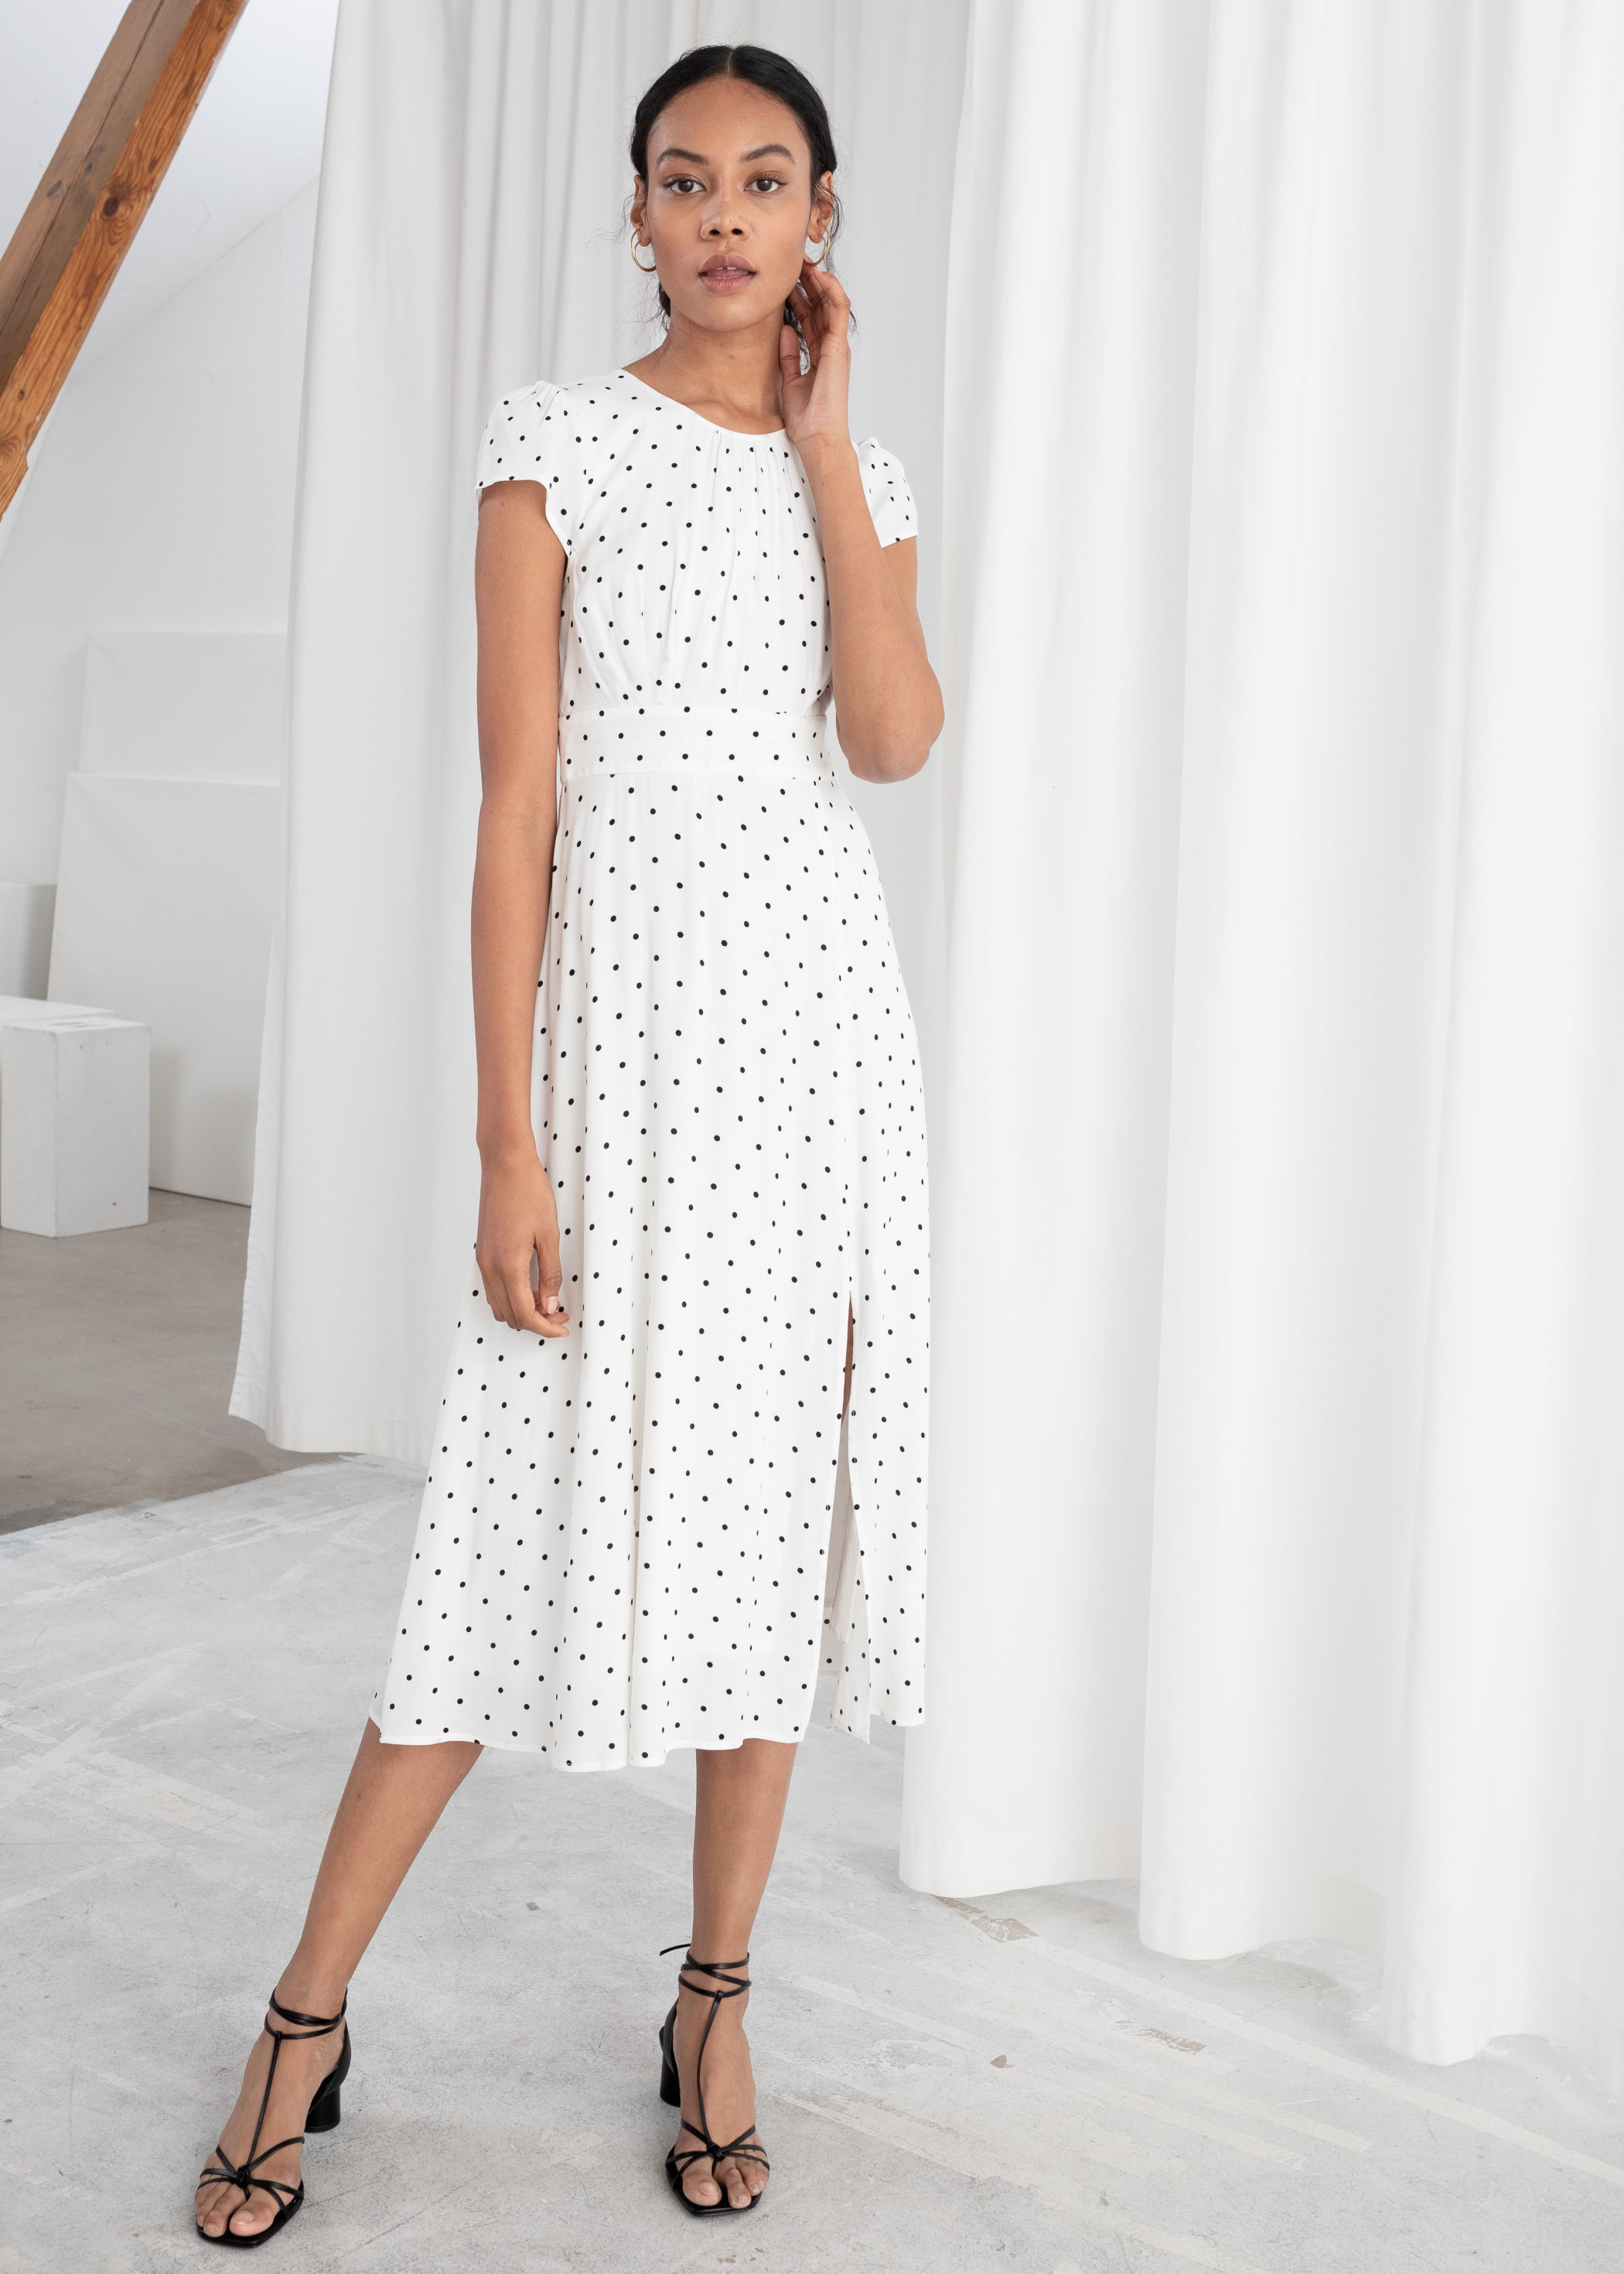 b43a4bf1bb3 The Best Dresses Of 2019 (So Far) - Things We Love - Livingly